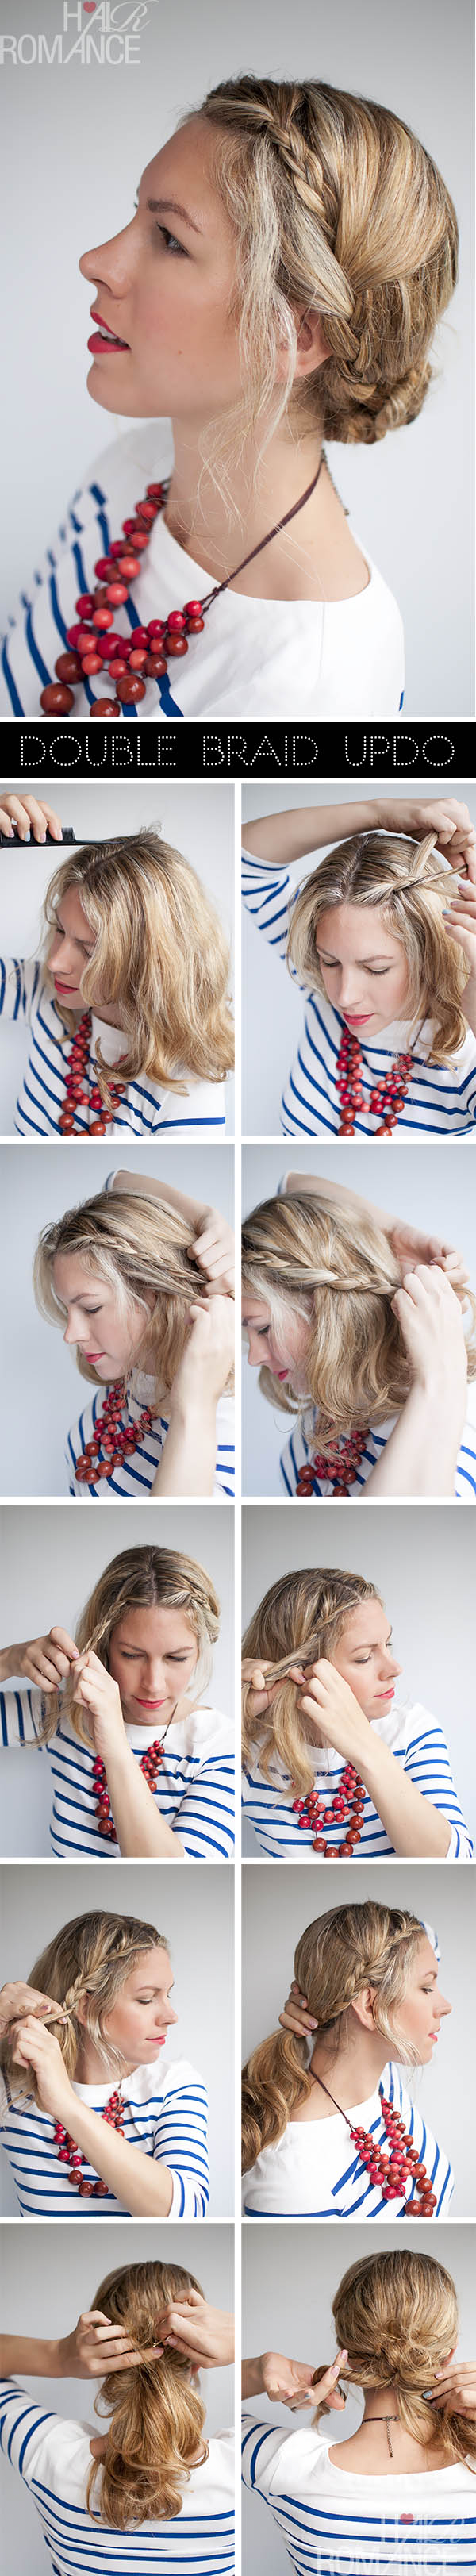 Double Braid Updo Tutorial by Hair Romance